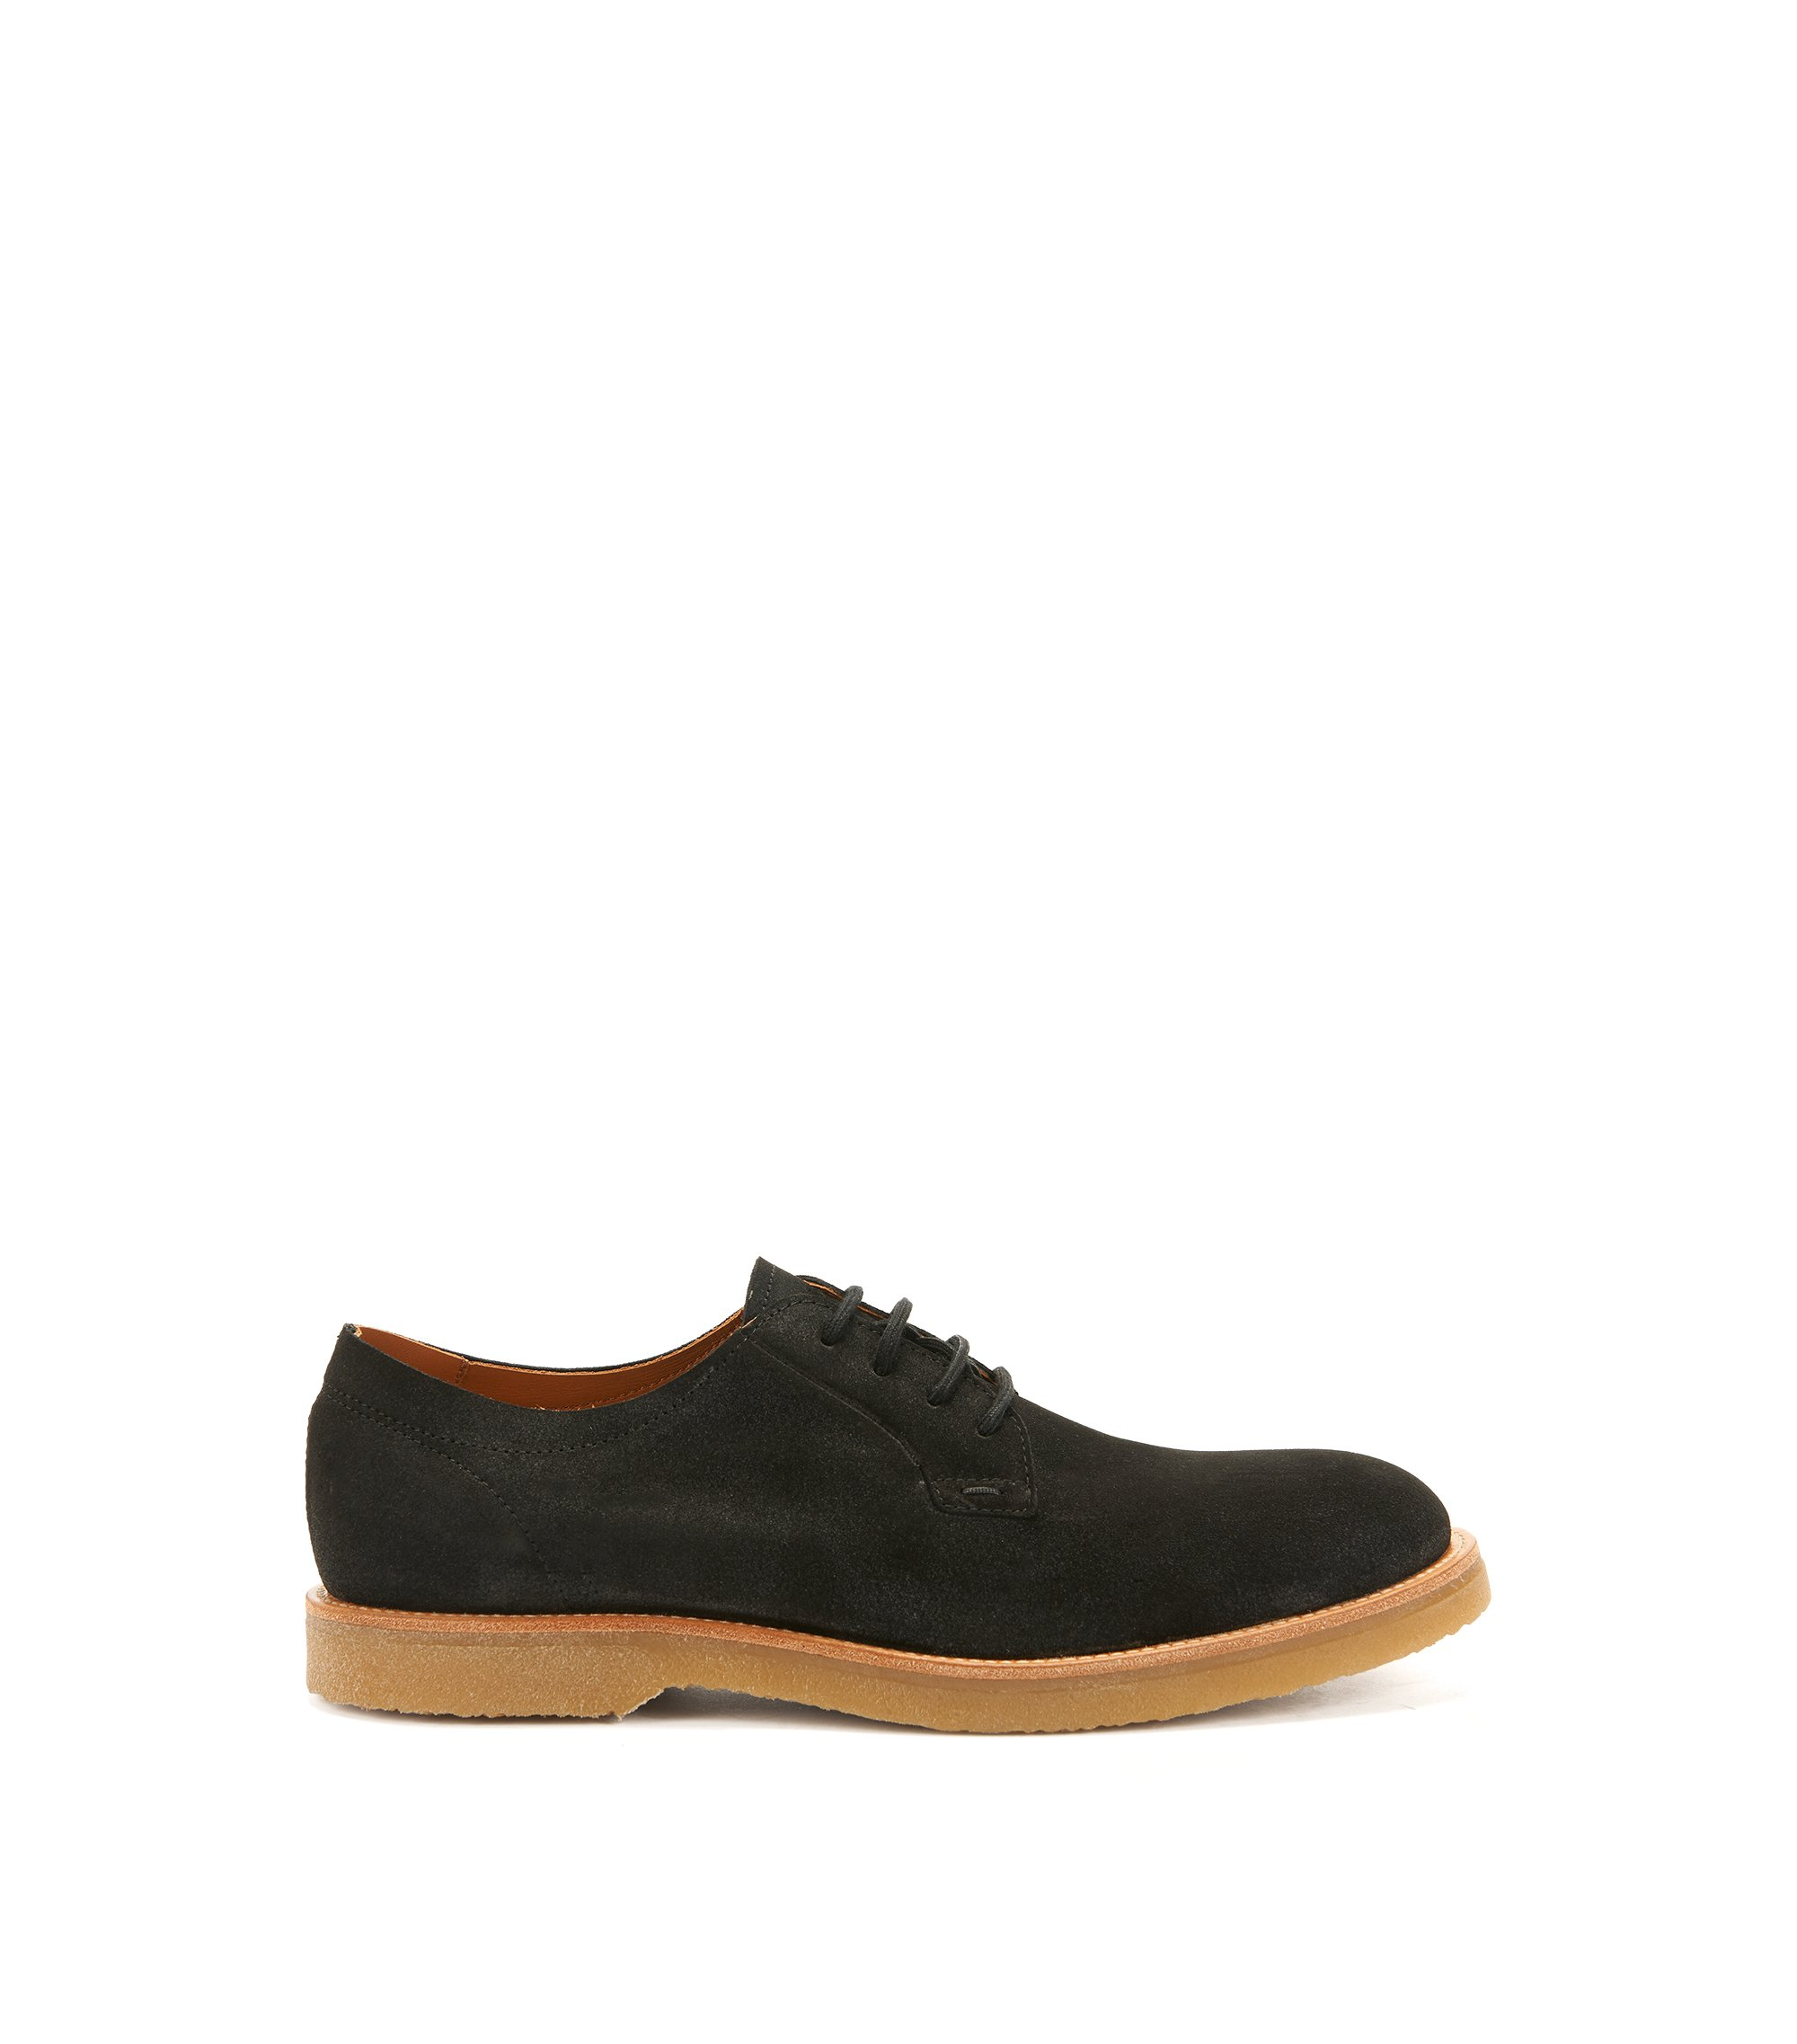 Lace-up suede Derby shoes with rubber soles, Dunkelgrau